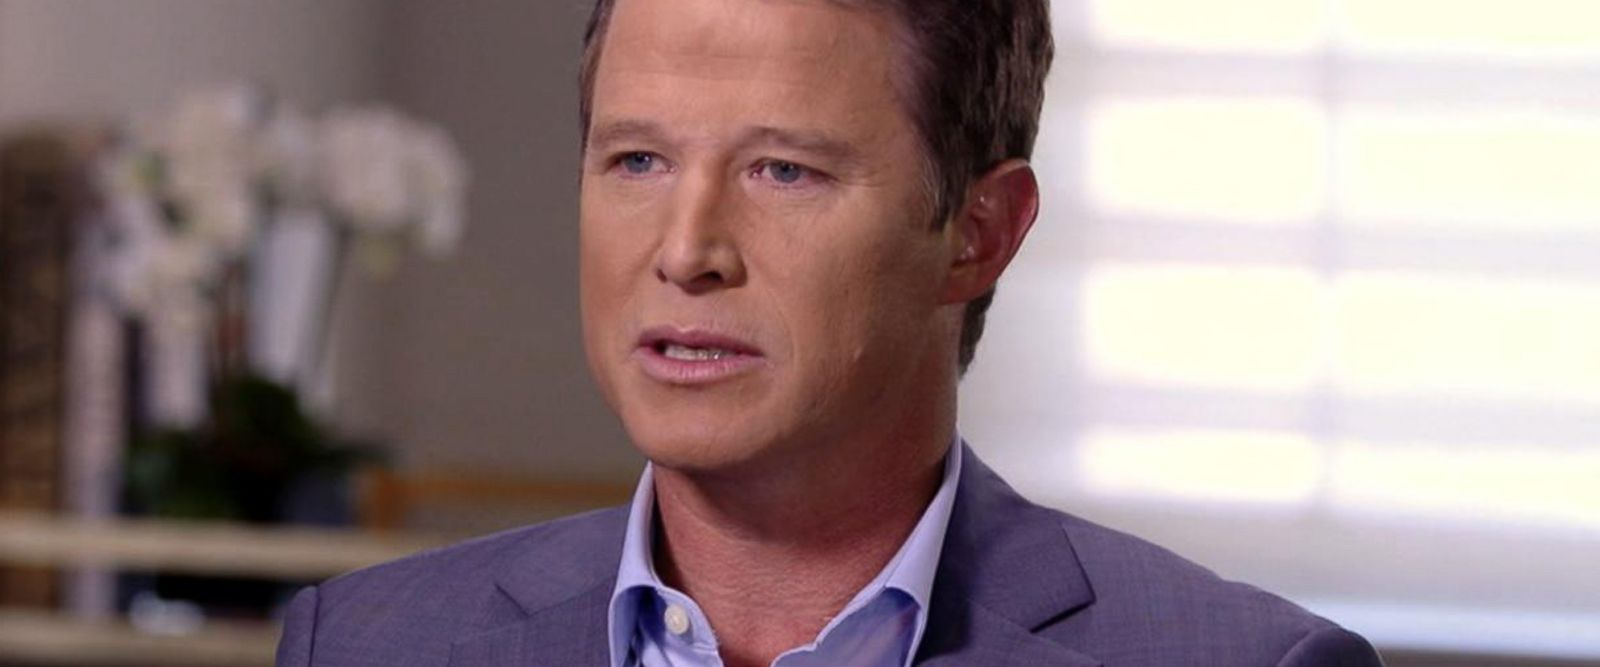 VIDEO: Billy Bush speaks out about infamous tape with Trump